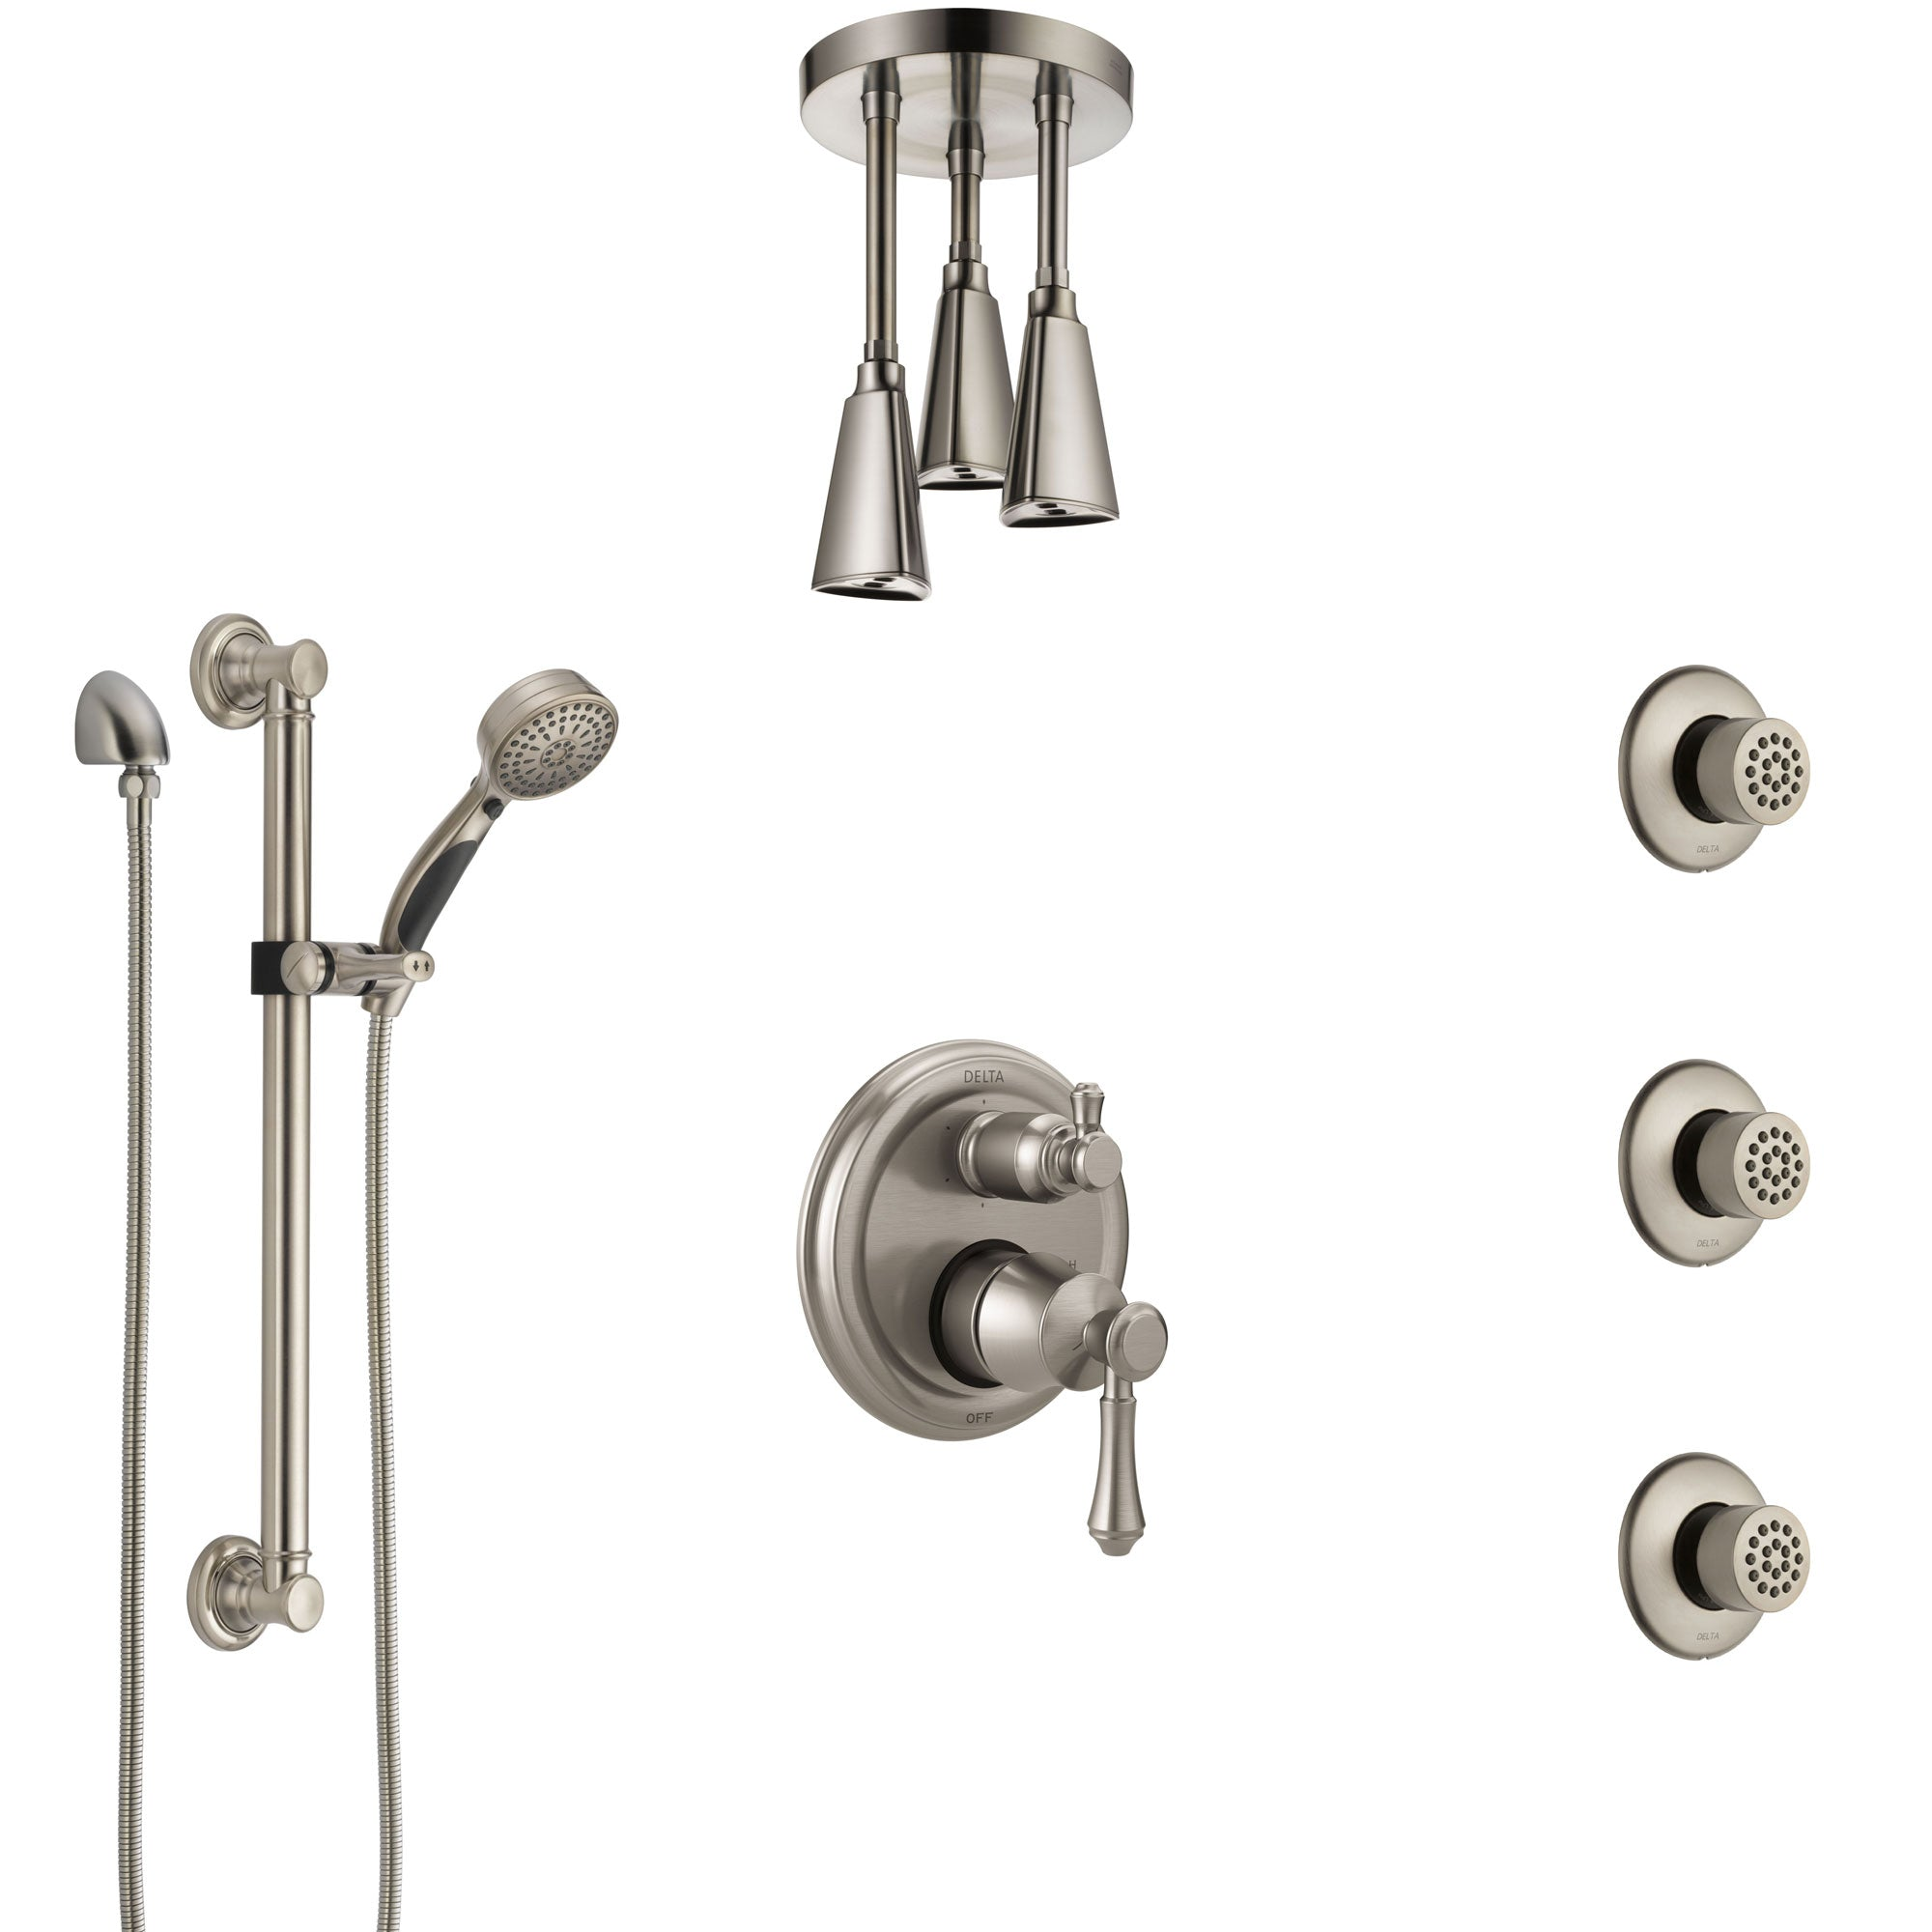 Delta Cassidy Stainless Steel Finish Integrated Diverter Shower System Control Handle, Ceiling Showerhead, 3 Body Jets, Grab Bar Hand Spray SS24997SS4